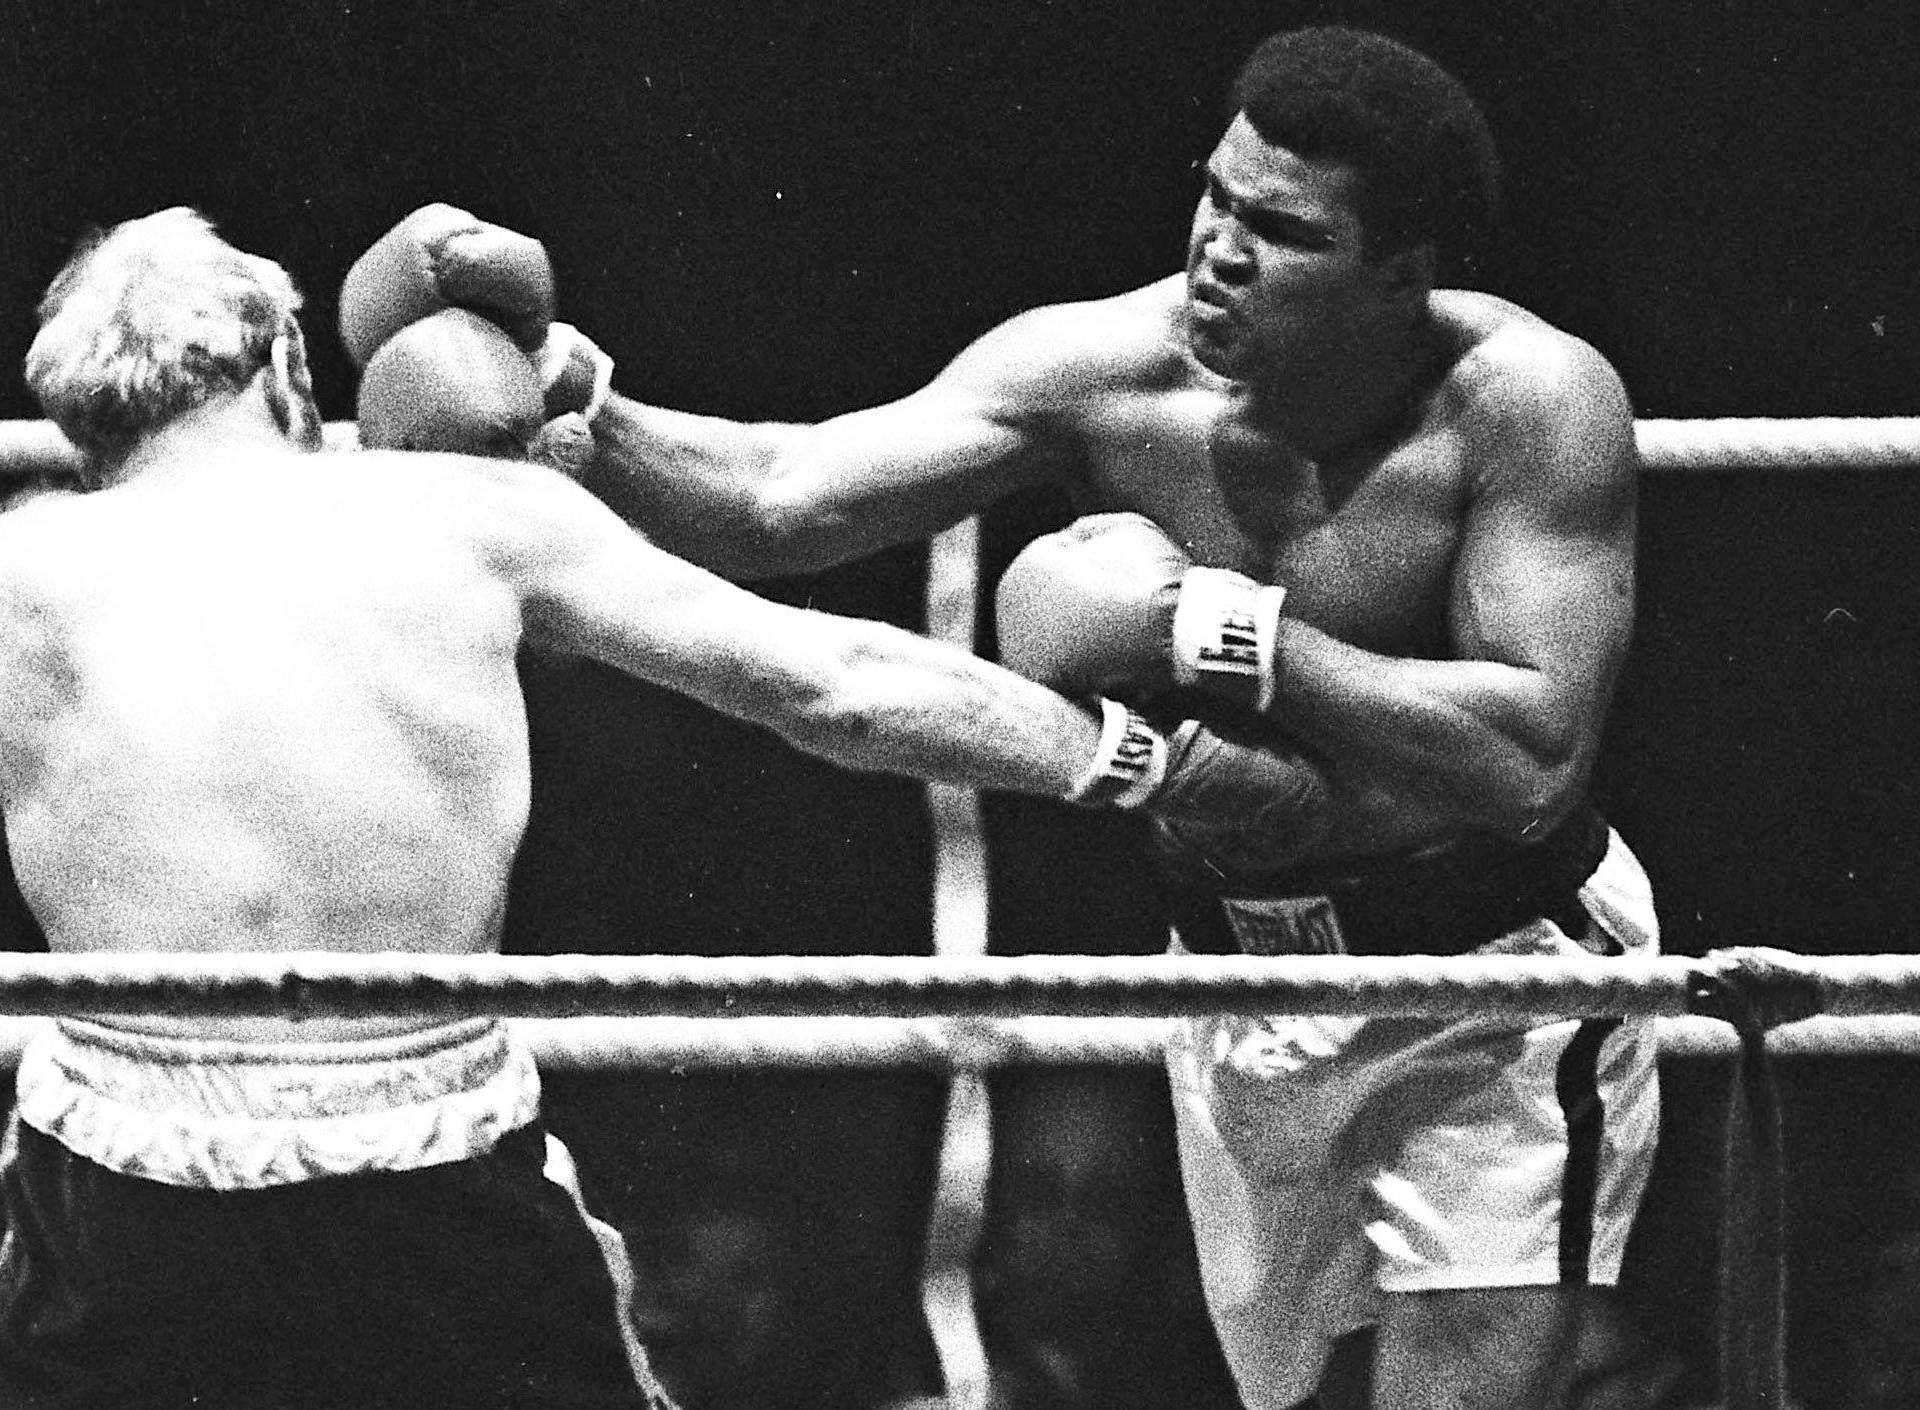 Muhammad Ali punches Richard Dunn while fighting for the WBC & WBA Heavyweight Title in Munich